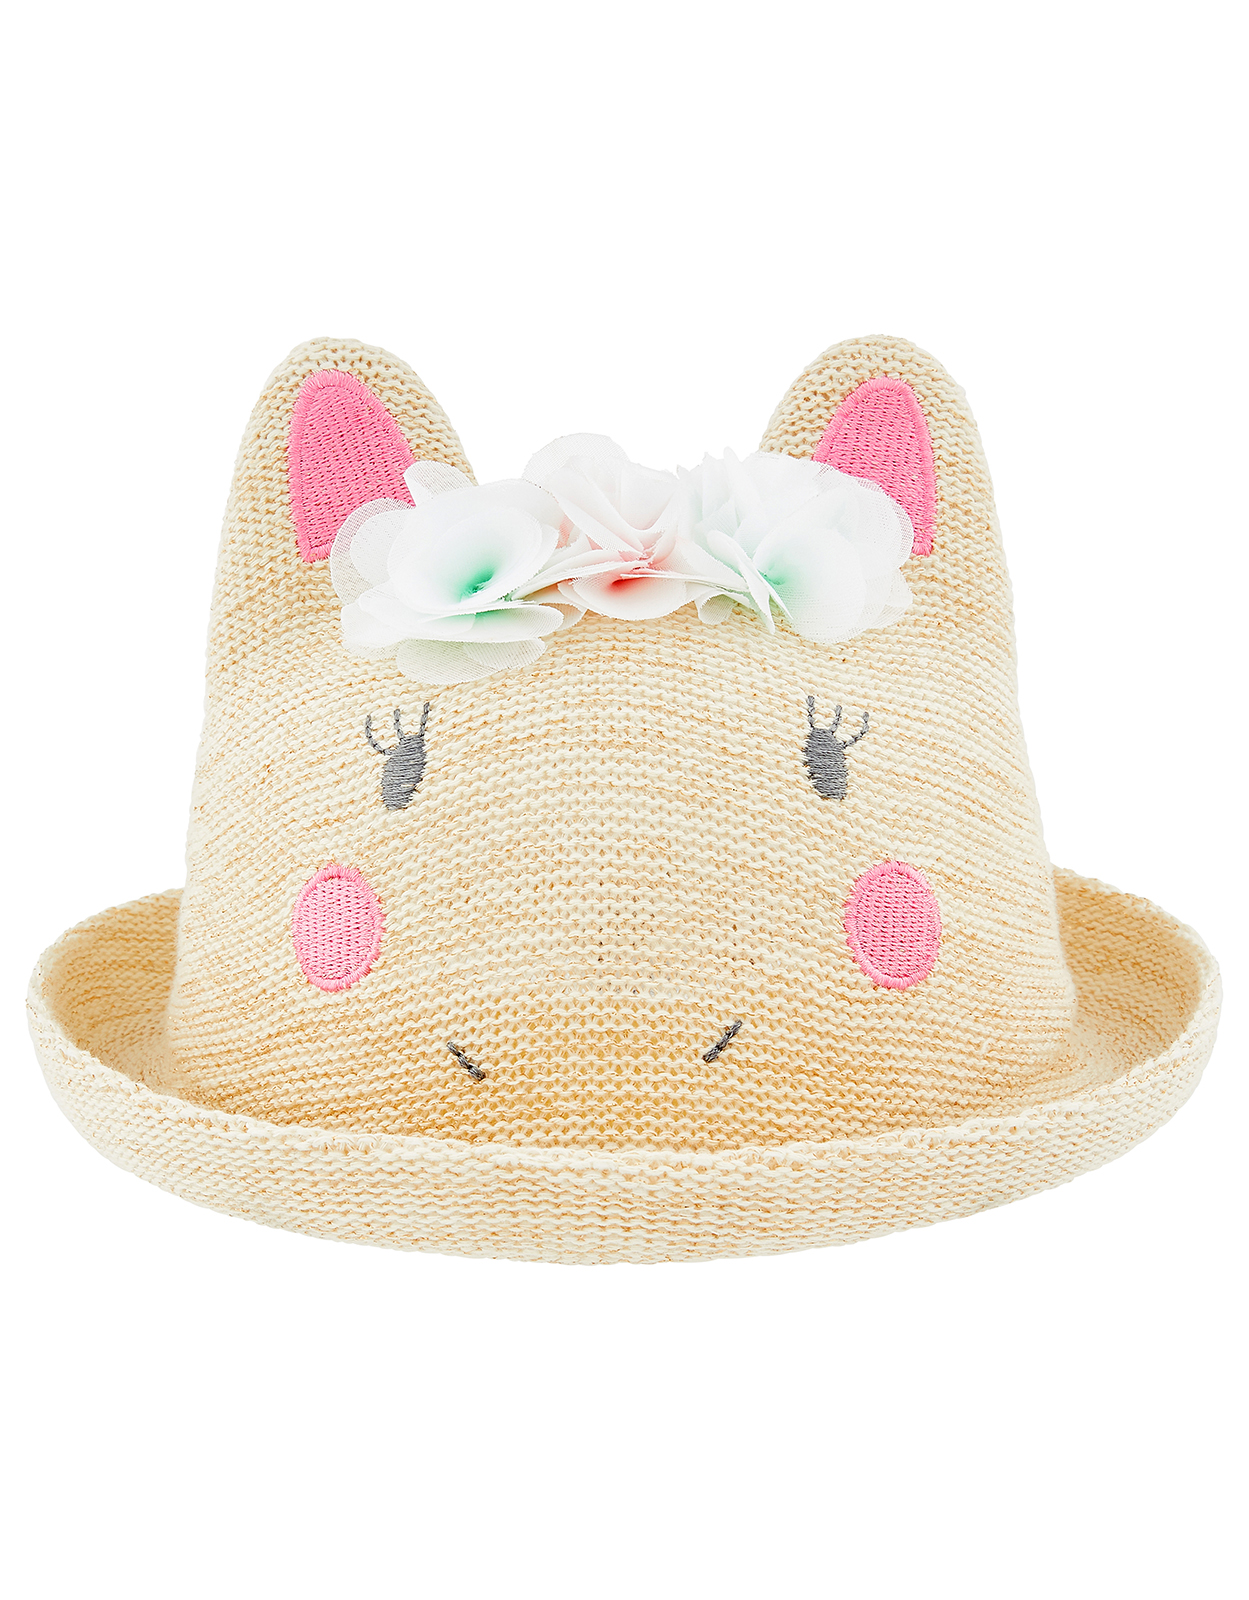 Monsoon Baby Sparkle Unicorn Bowler Hat